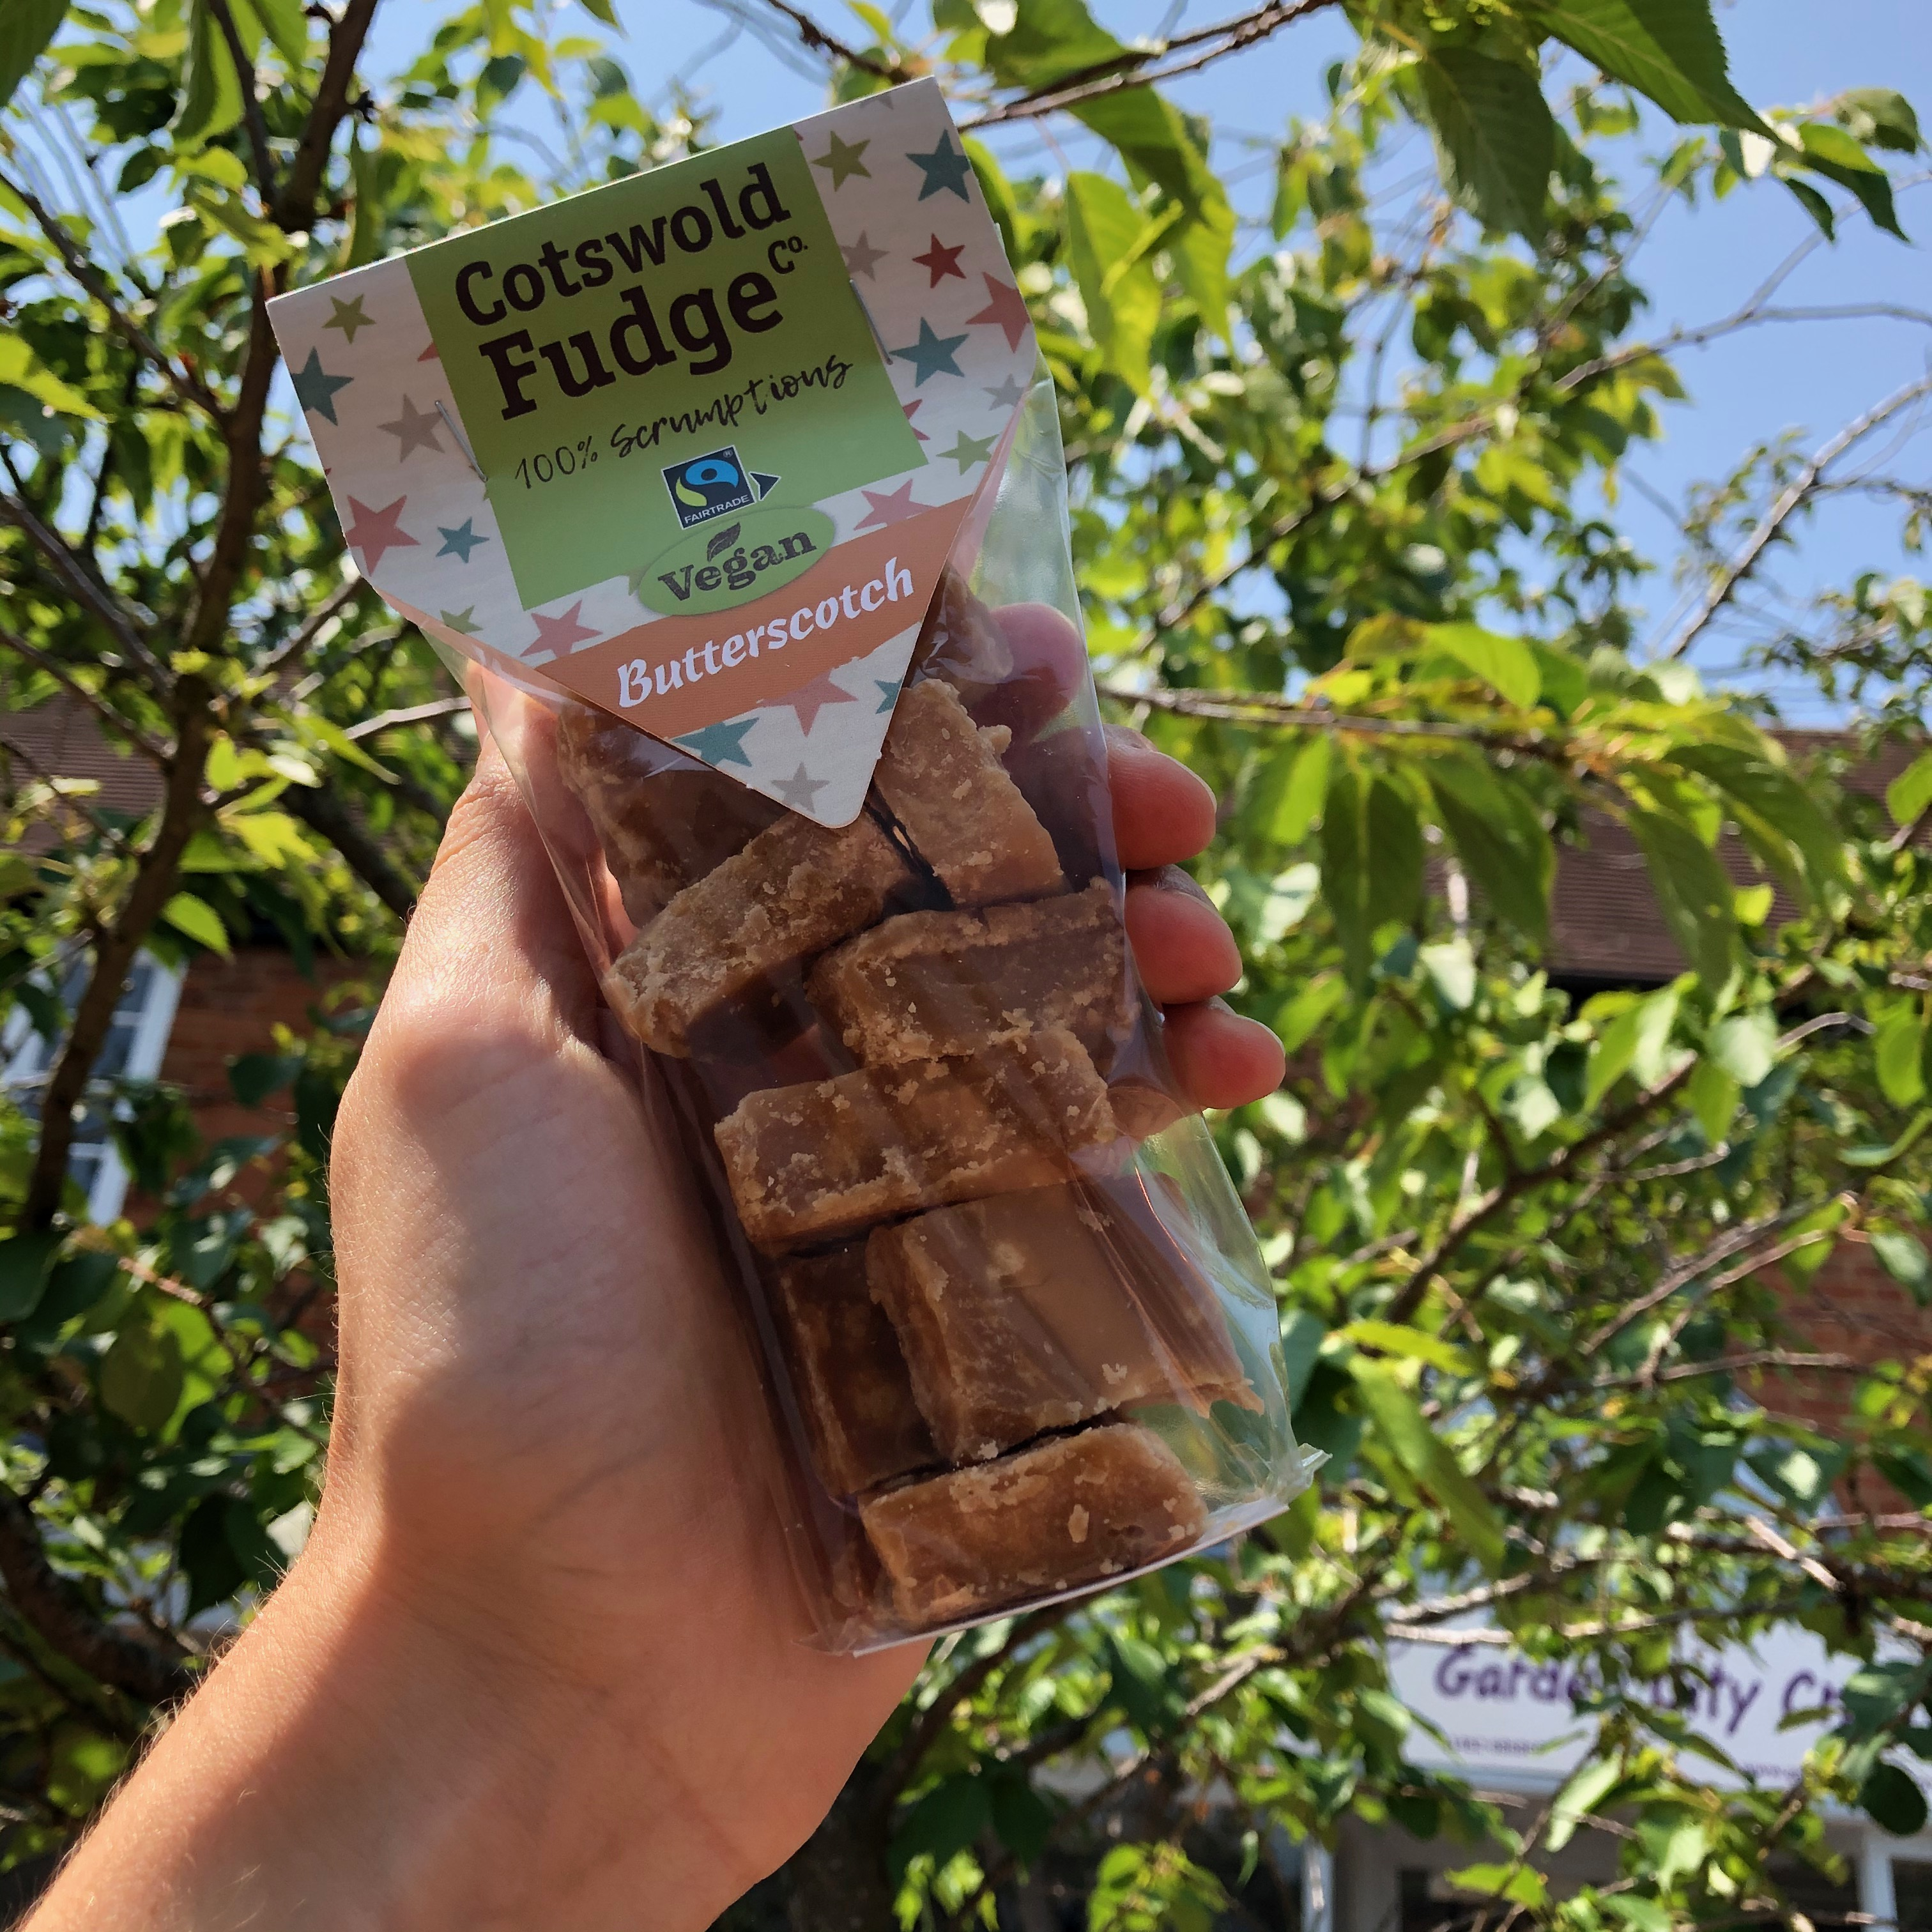 Cotswold Fudge Co - Vegan Butterscotch Fudge